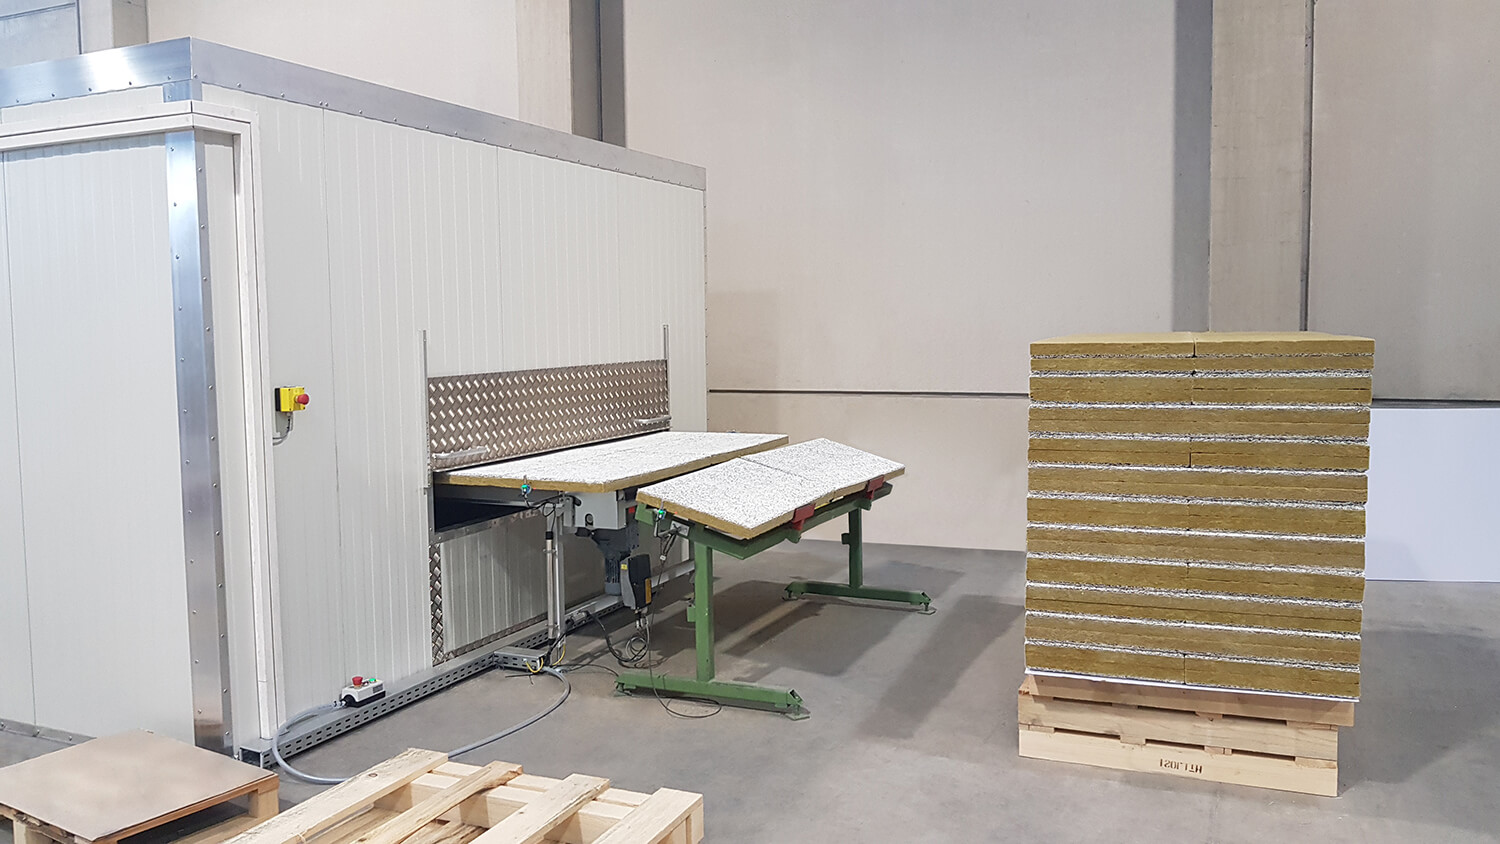 Incomac - incomac-drying-kilns-for-manufacturing-materials-ind